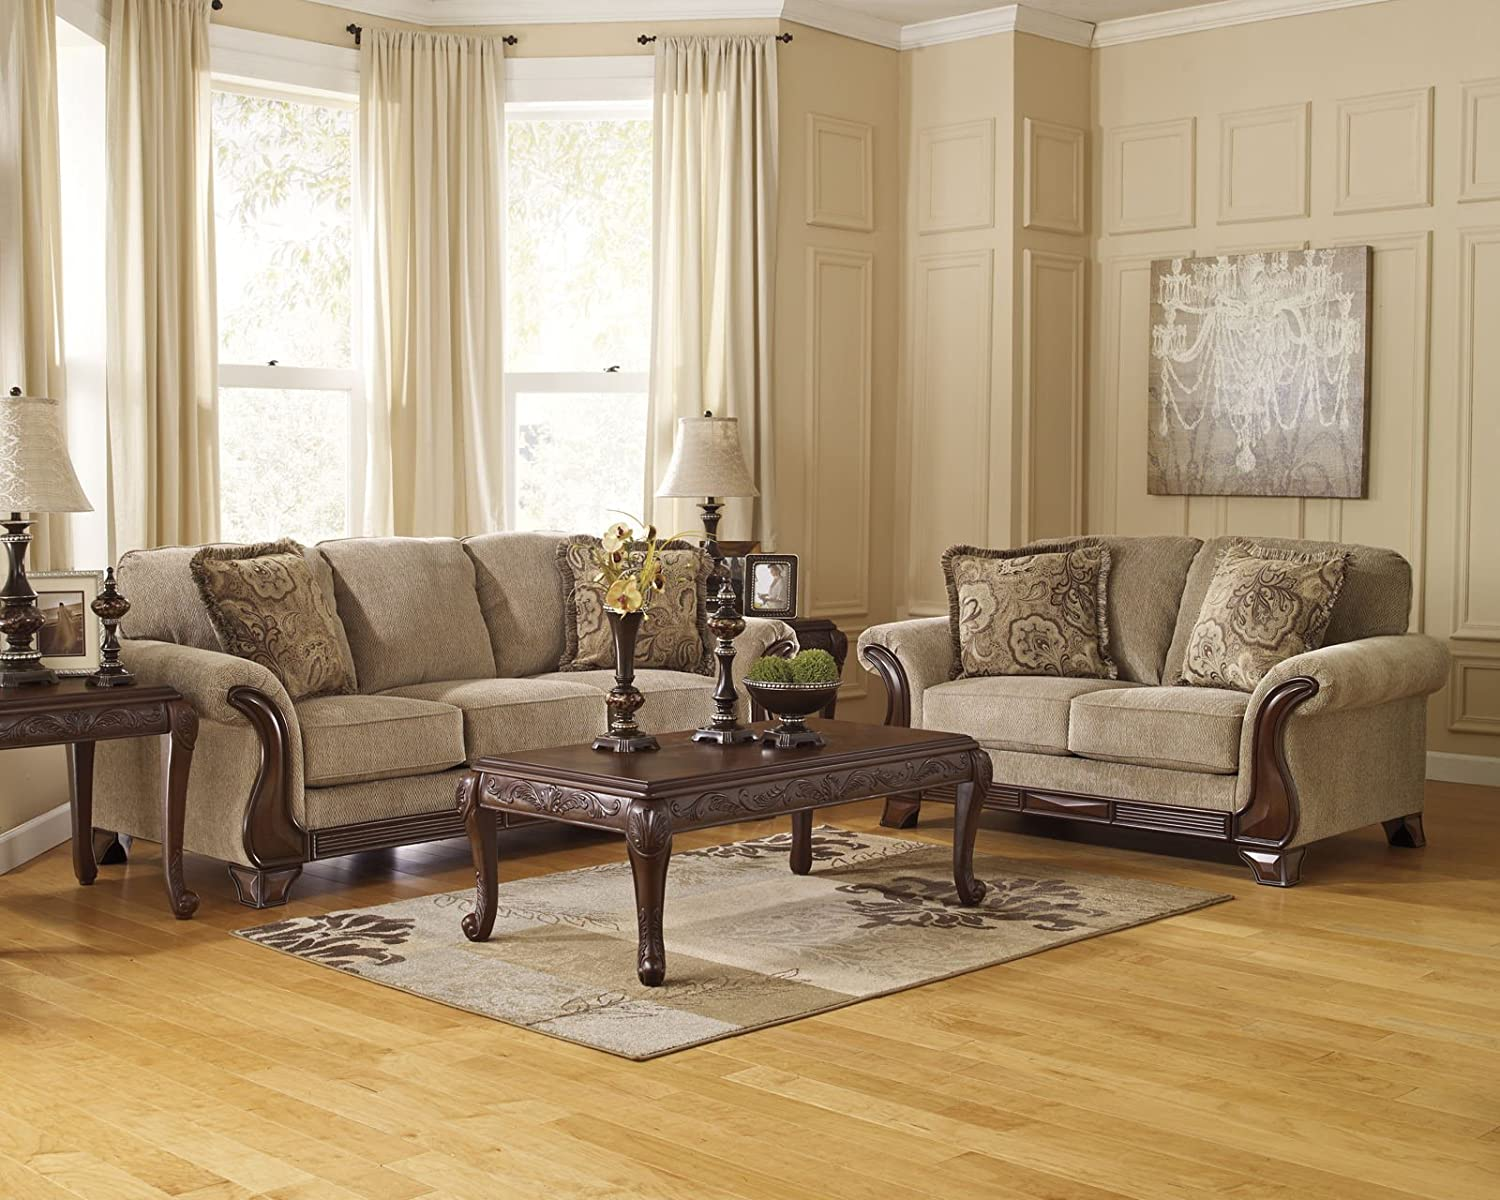 Amazon.com: Ashley Furniture Signature Design   Lanett Sofa   3 Seat  Traditional Couch With Oversized Pillow Back   Barley: Kitchen U0026 Dining